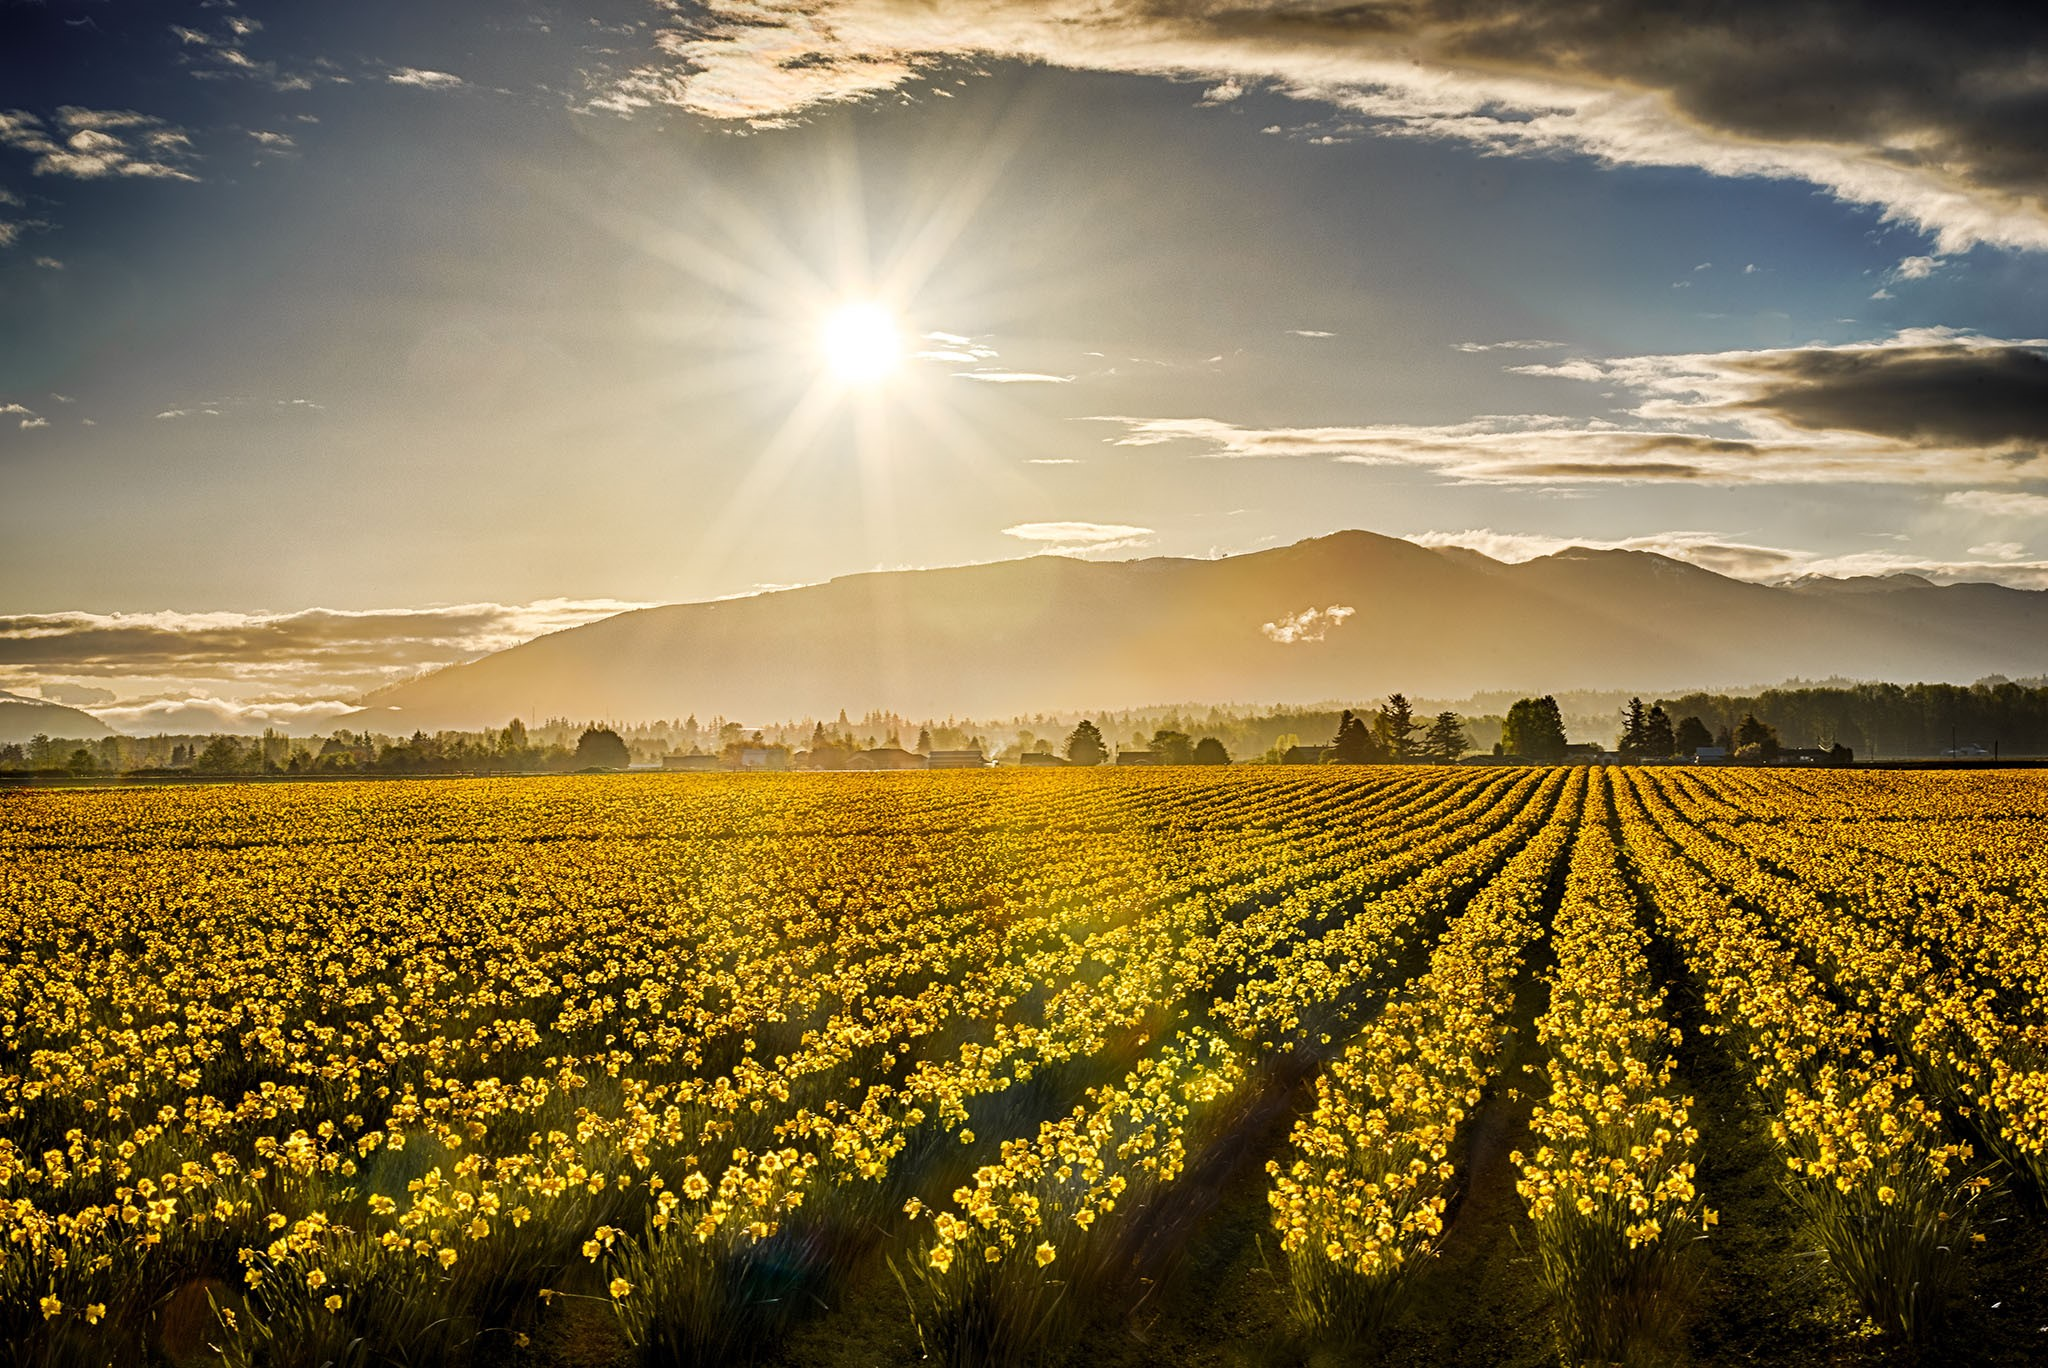 Daffodil Fields Mount Vernon, WA Photo Credit: David Larson